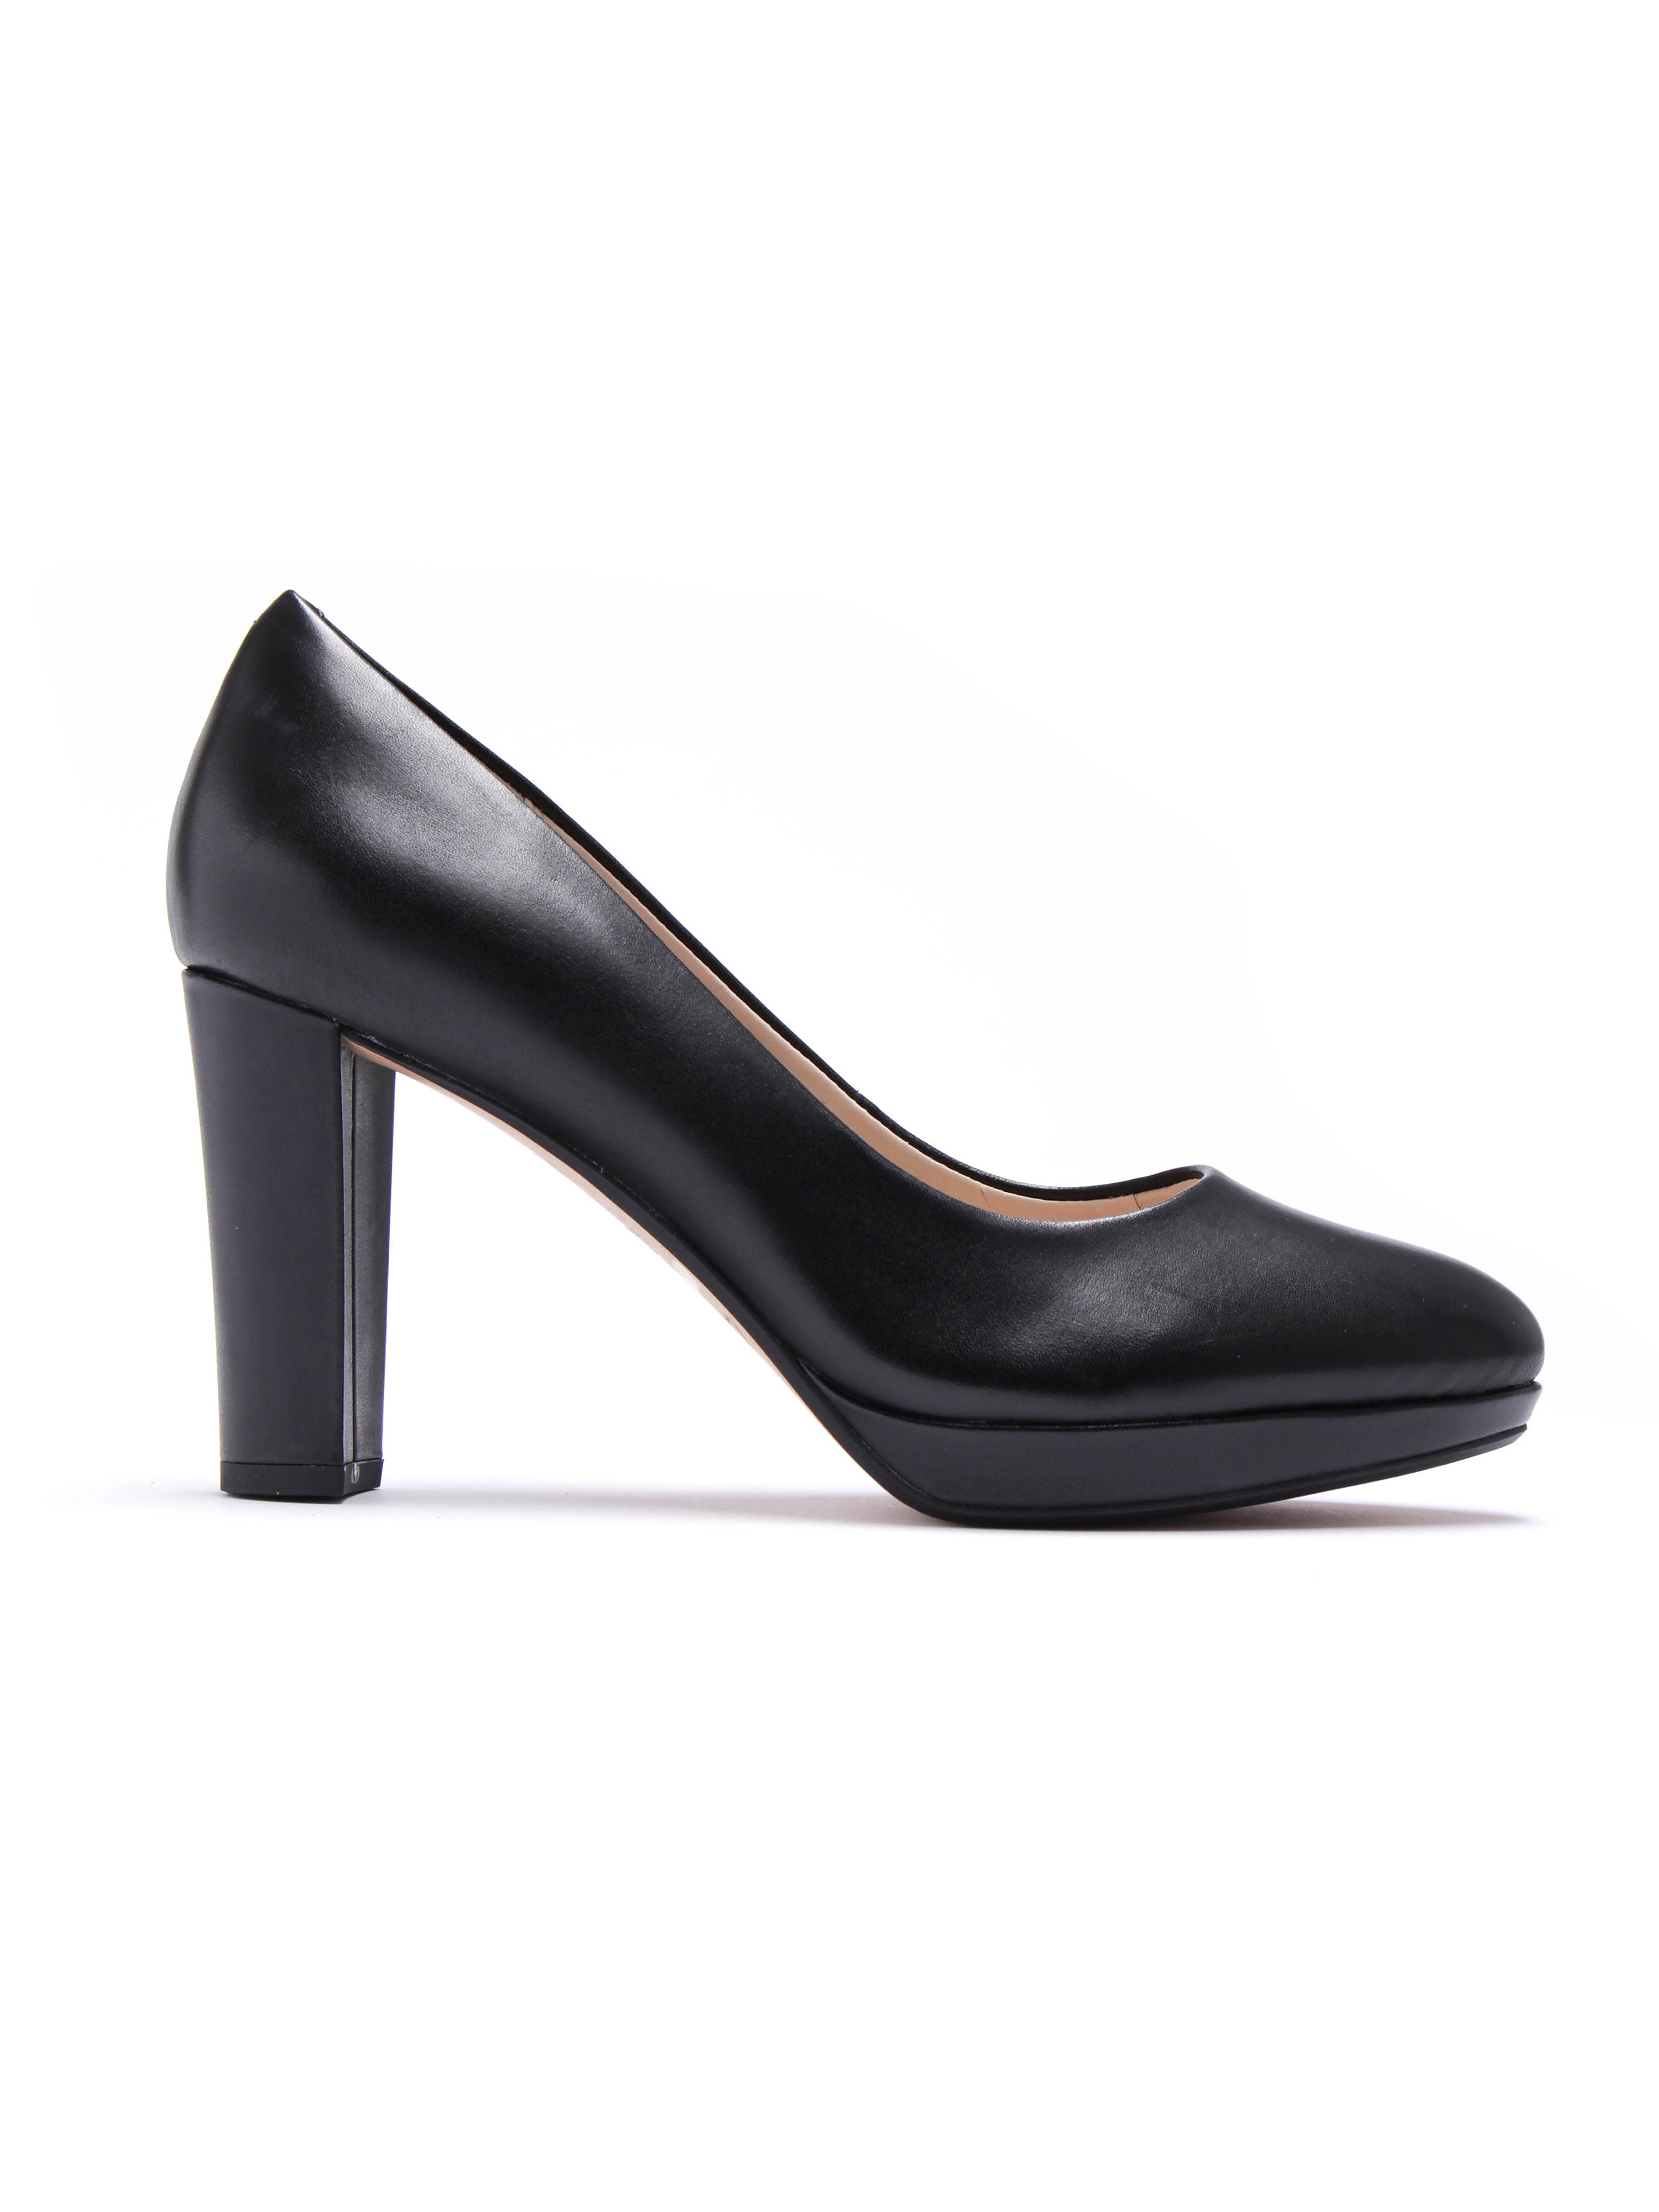 Clarks Women's Kendra Sienna Patent Leather Court Heel